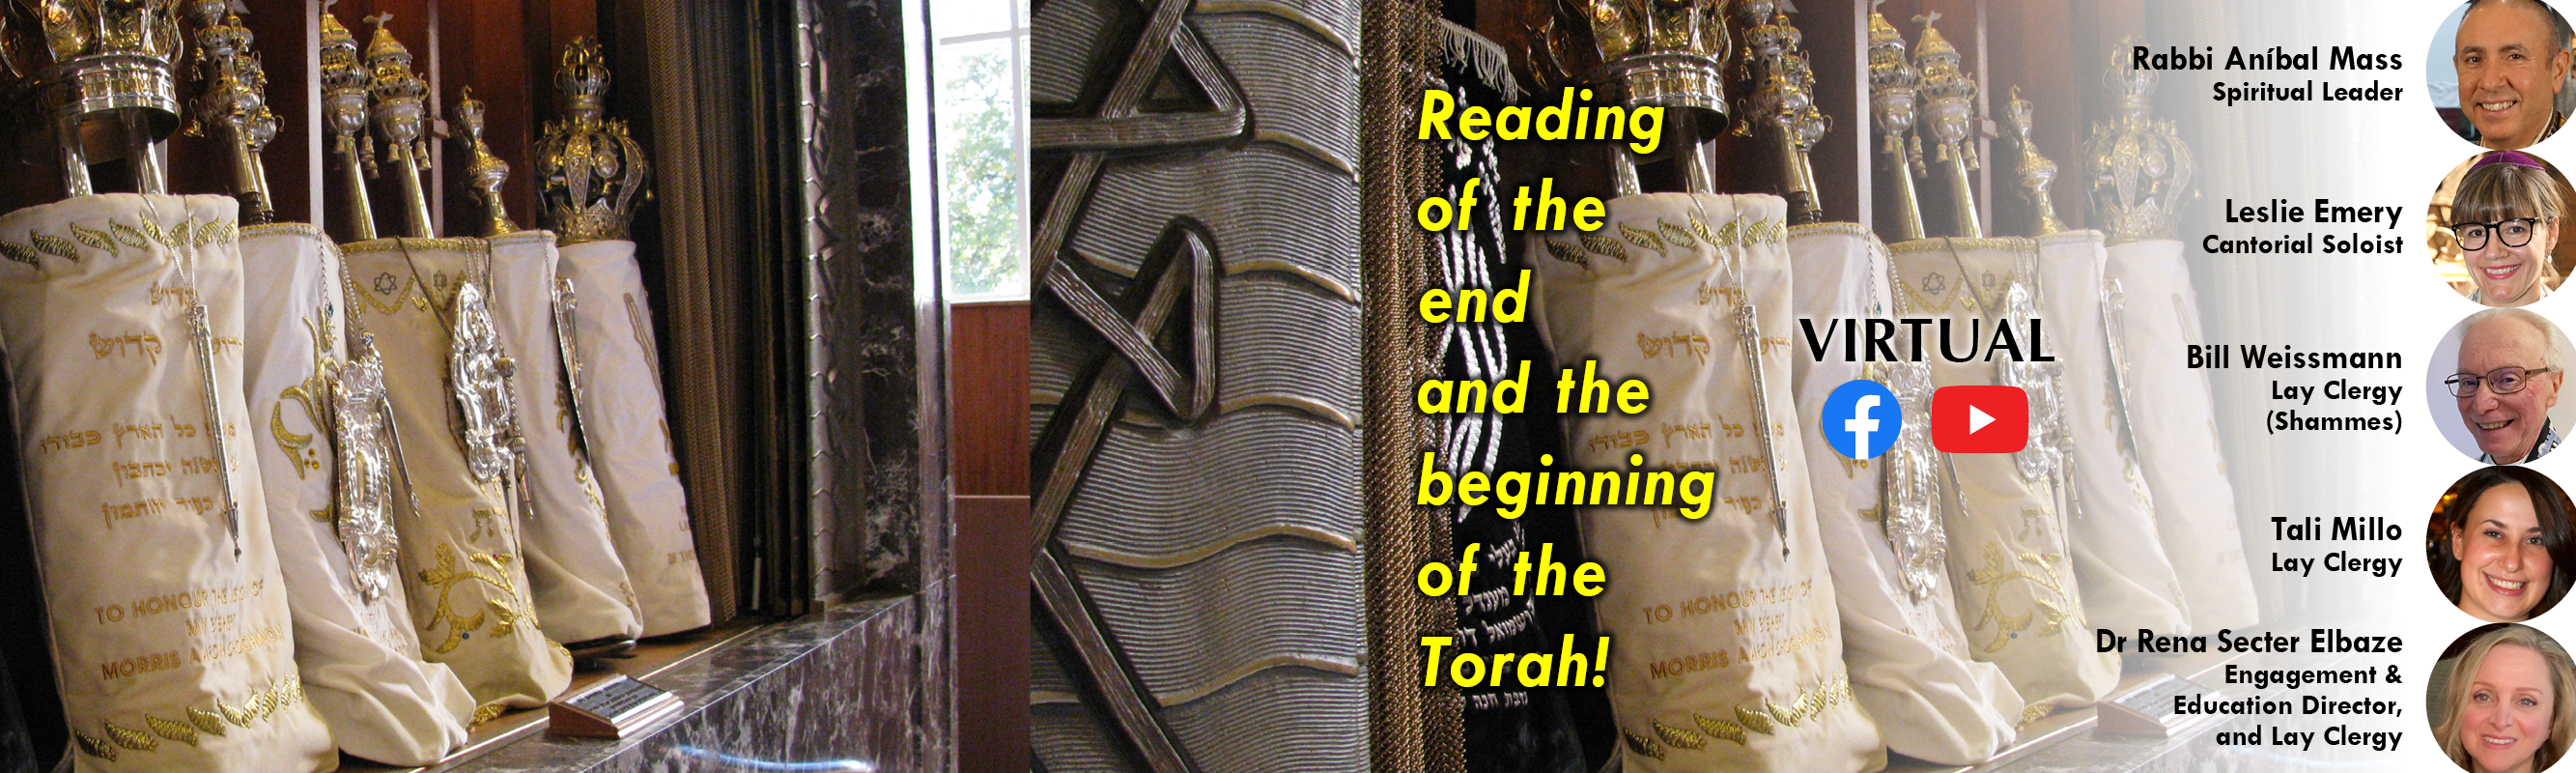 """<a href=""""https://www.szwinnipeg.ca/event/2021-09-28-Simchat-Torah""""                                     target="""""""">                                                                 <span class=""""slider_title"""">                                     Simchat Torah Celebration<br>Family Friendly<br>Tue, Sep 28, 7:00 PM CDT                                </span>                                                                 </a>                                                                                                                                                                                       <span class=""""slider_description"""">Celebrate Simchat Torah with Congregation Shaarey Zedek! This family friendly event will feature singing, dancing, and reading of the end and beginning of the Torah.</span>                                                                                     <a href=""""https://www.szwinnipeg.ca/event/2021-09-28-Simchat-Torah"""" class=""""slider_link""""                             target="""""""">                             Learn More                            </a>"""